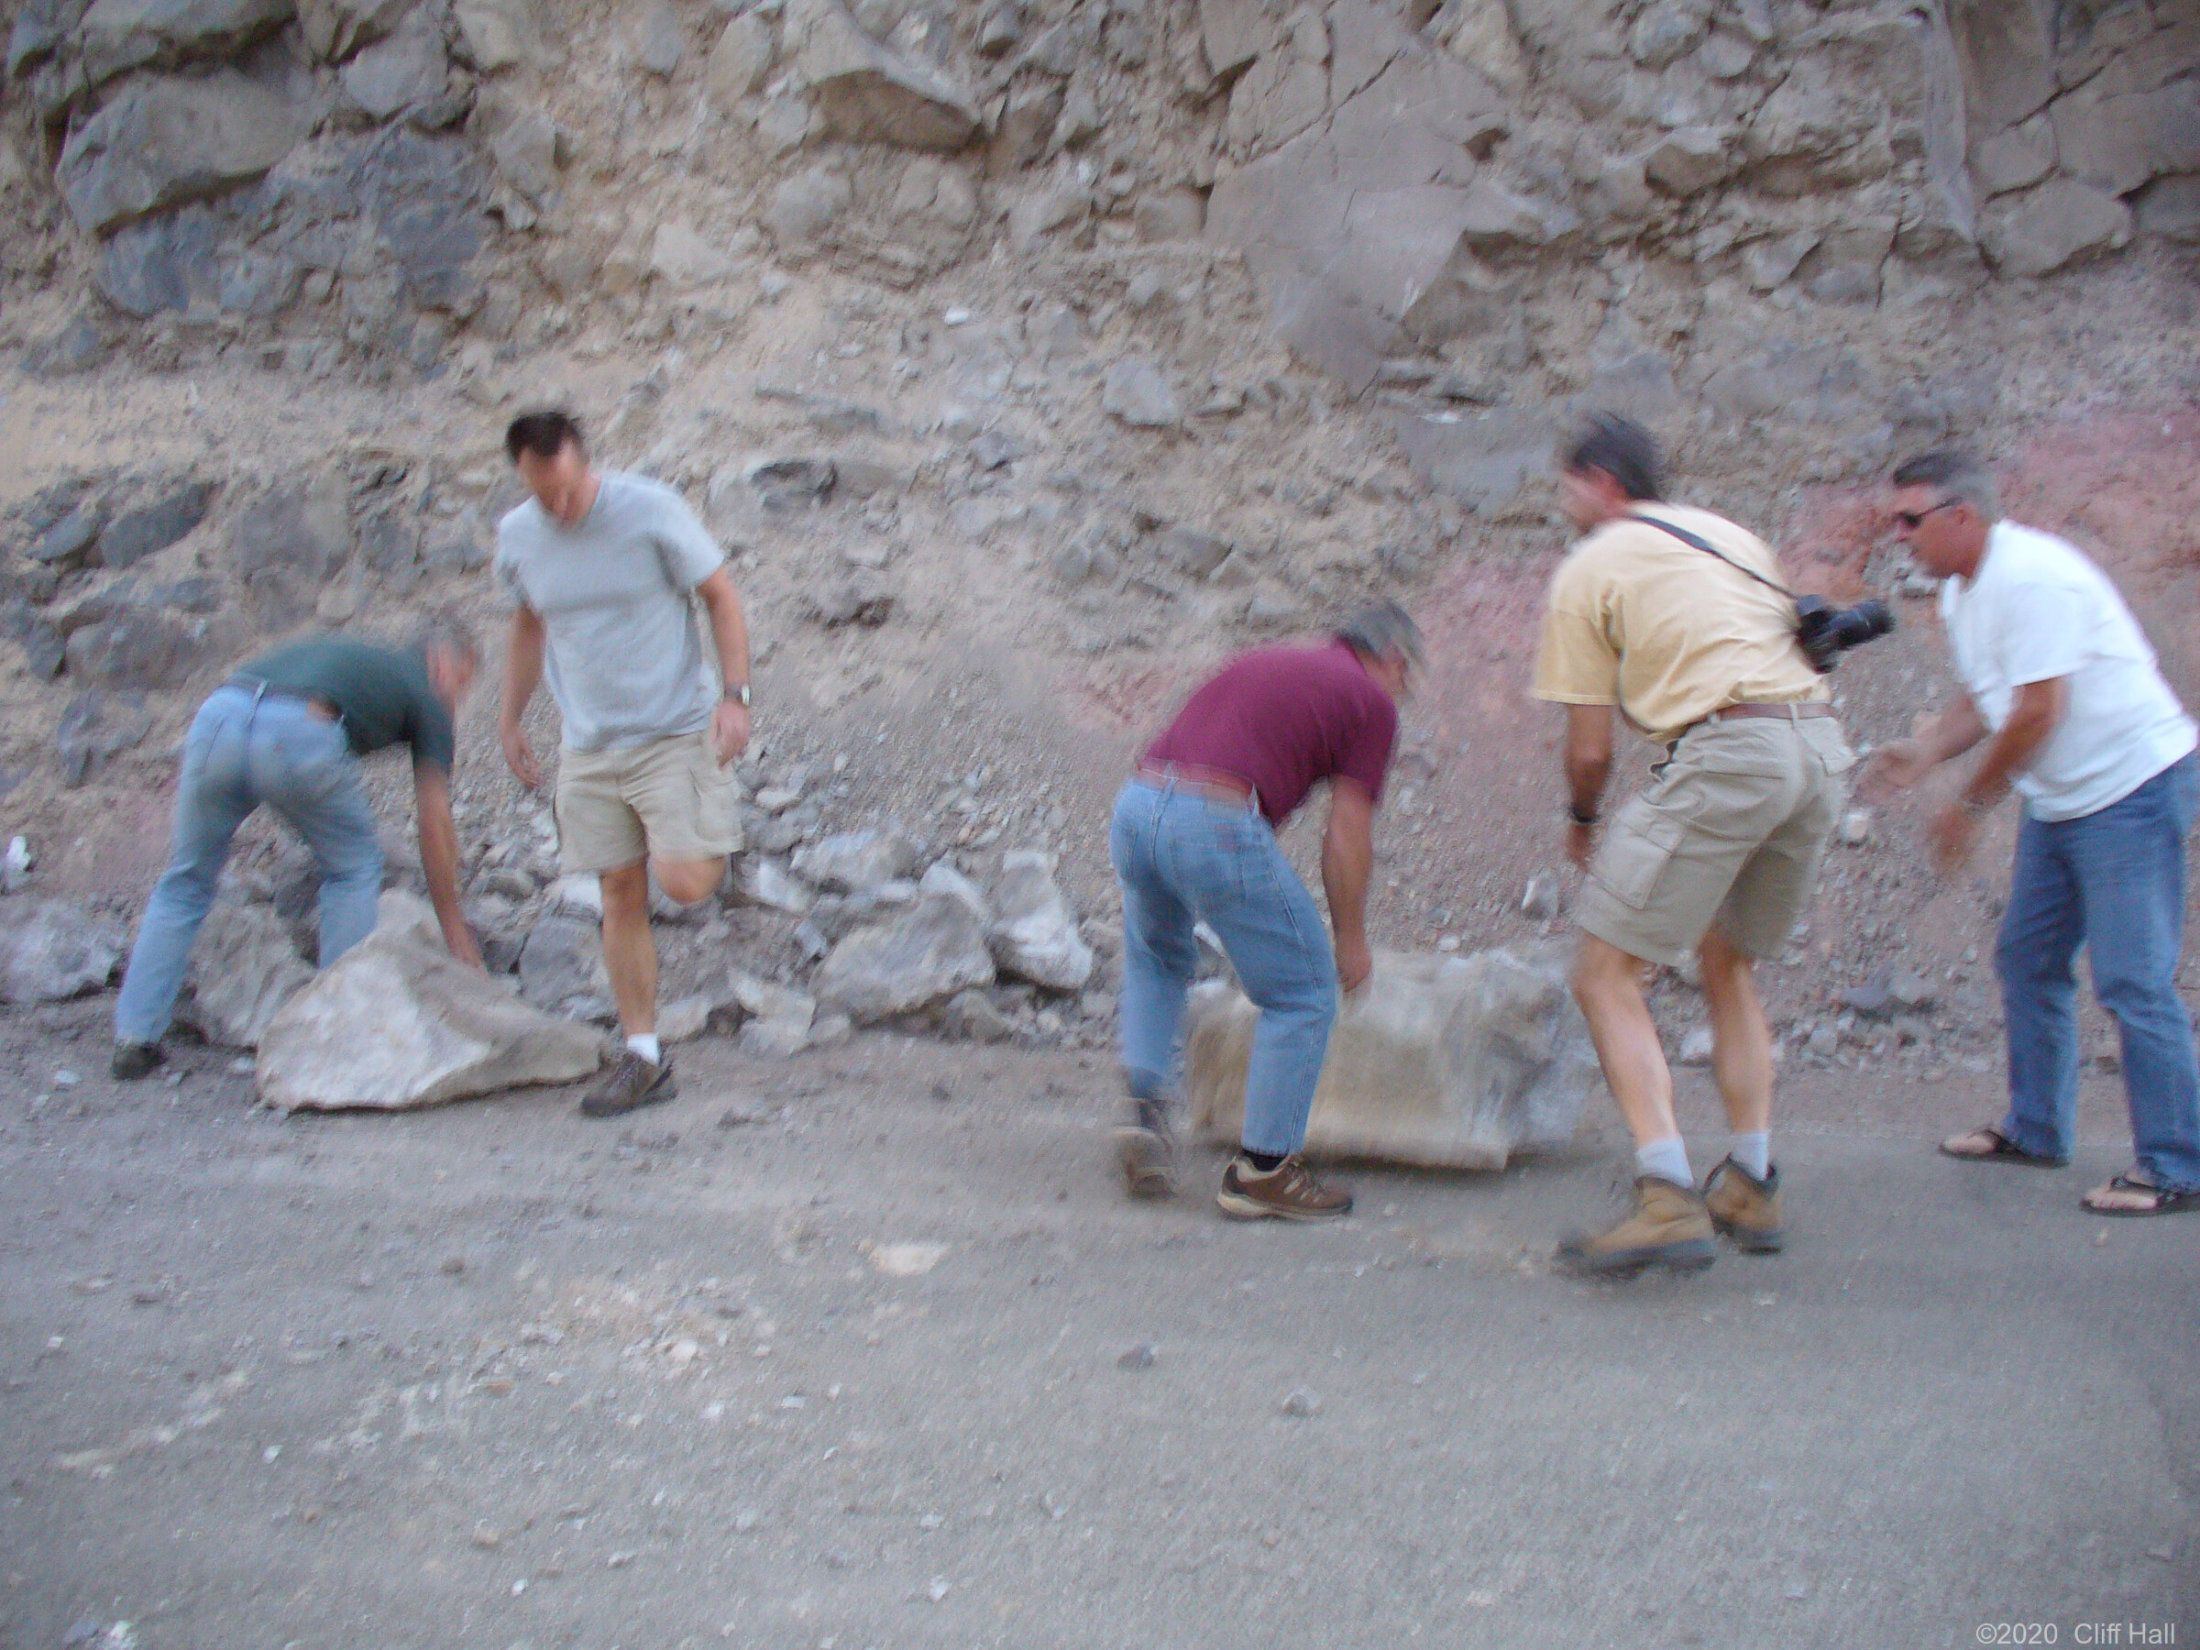 Working on the road gang, near Lone Pine, CA